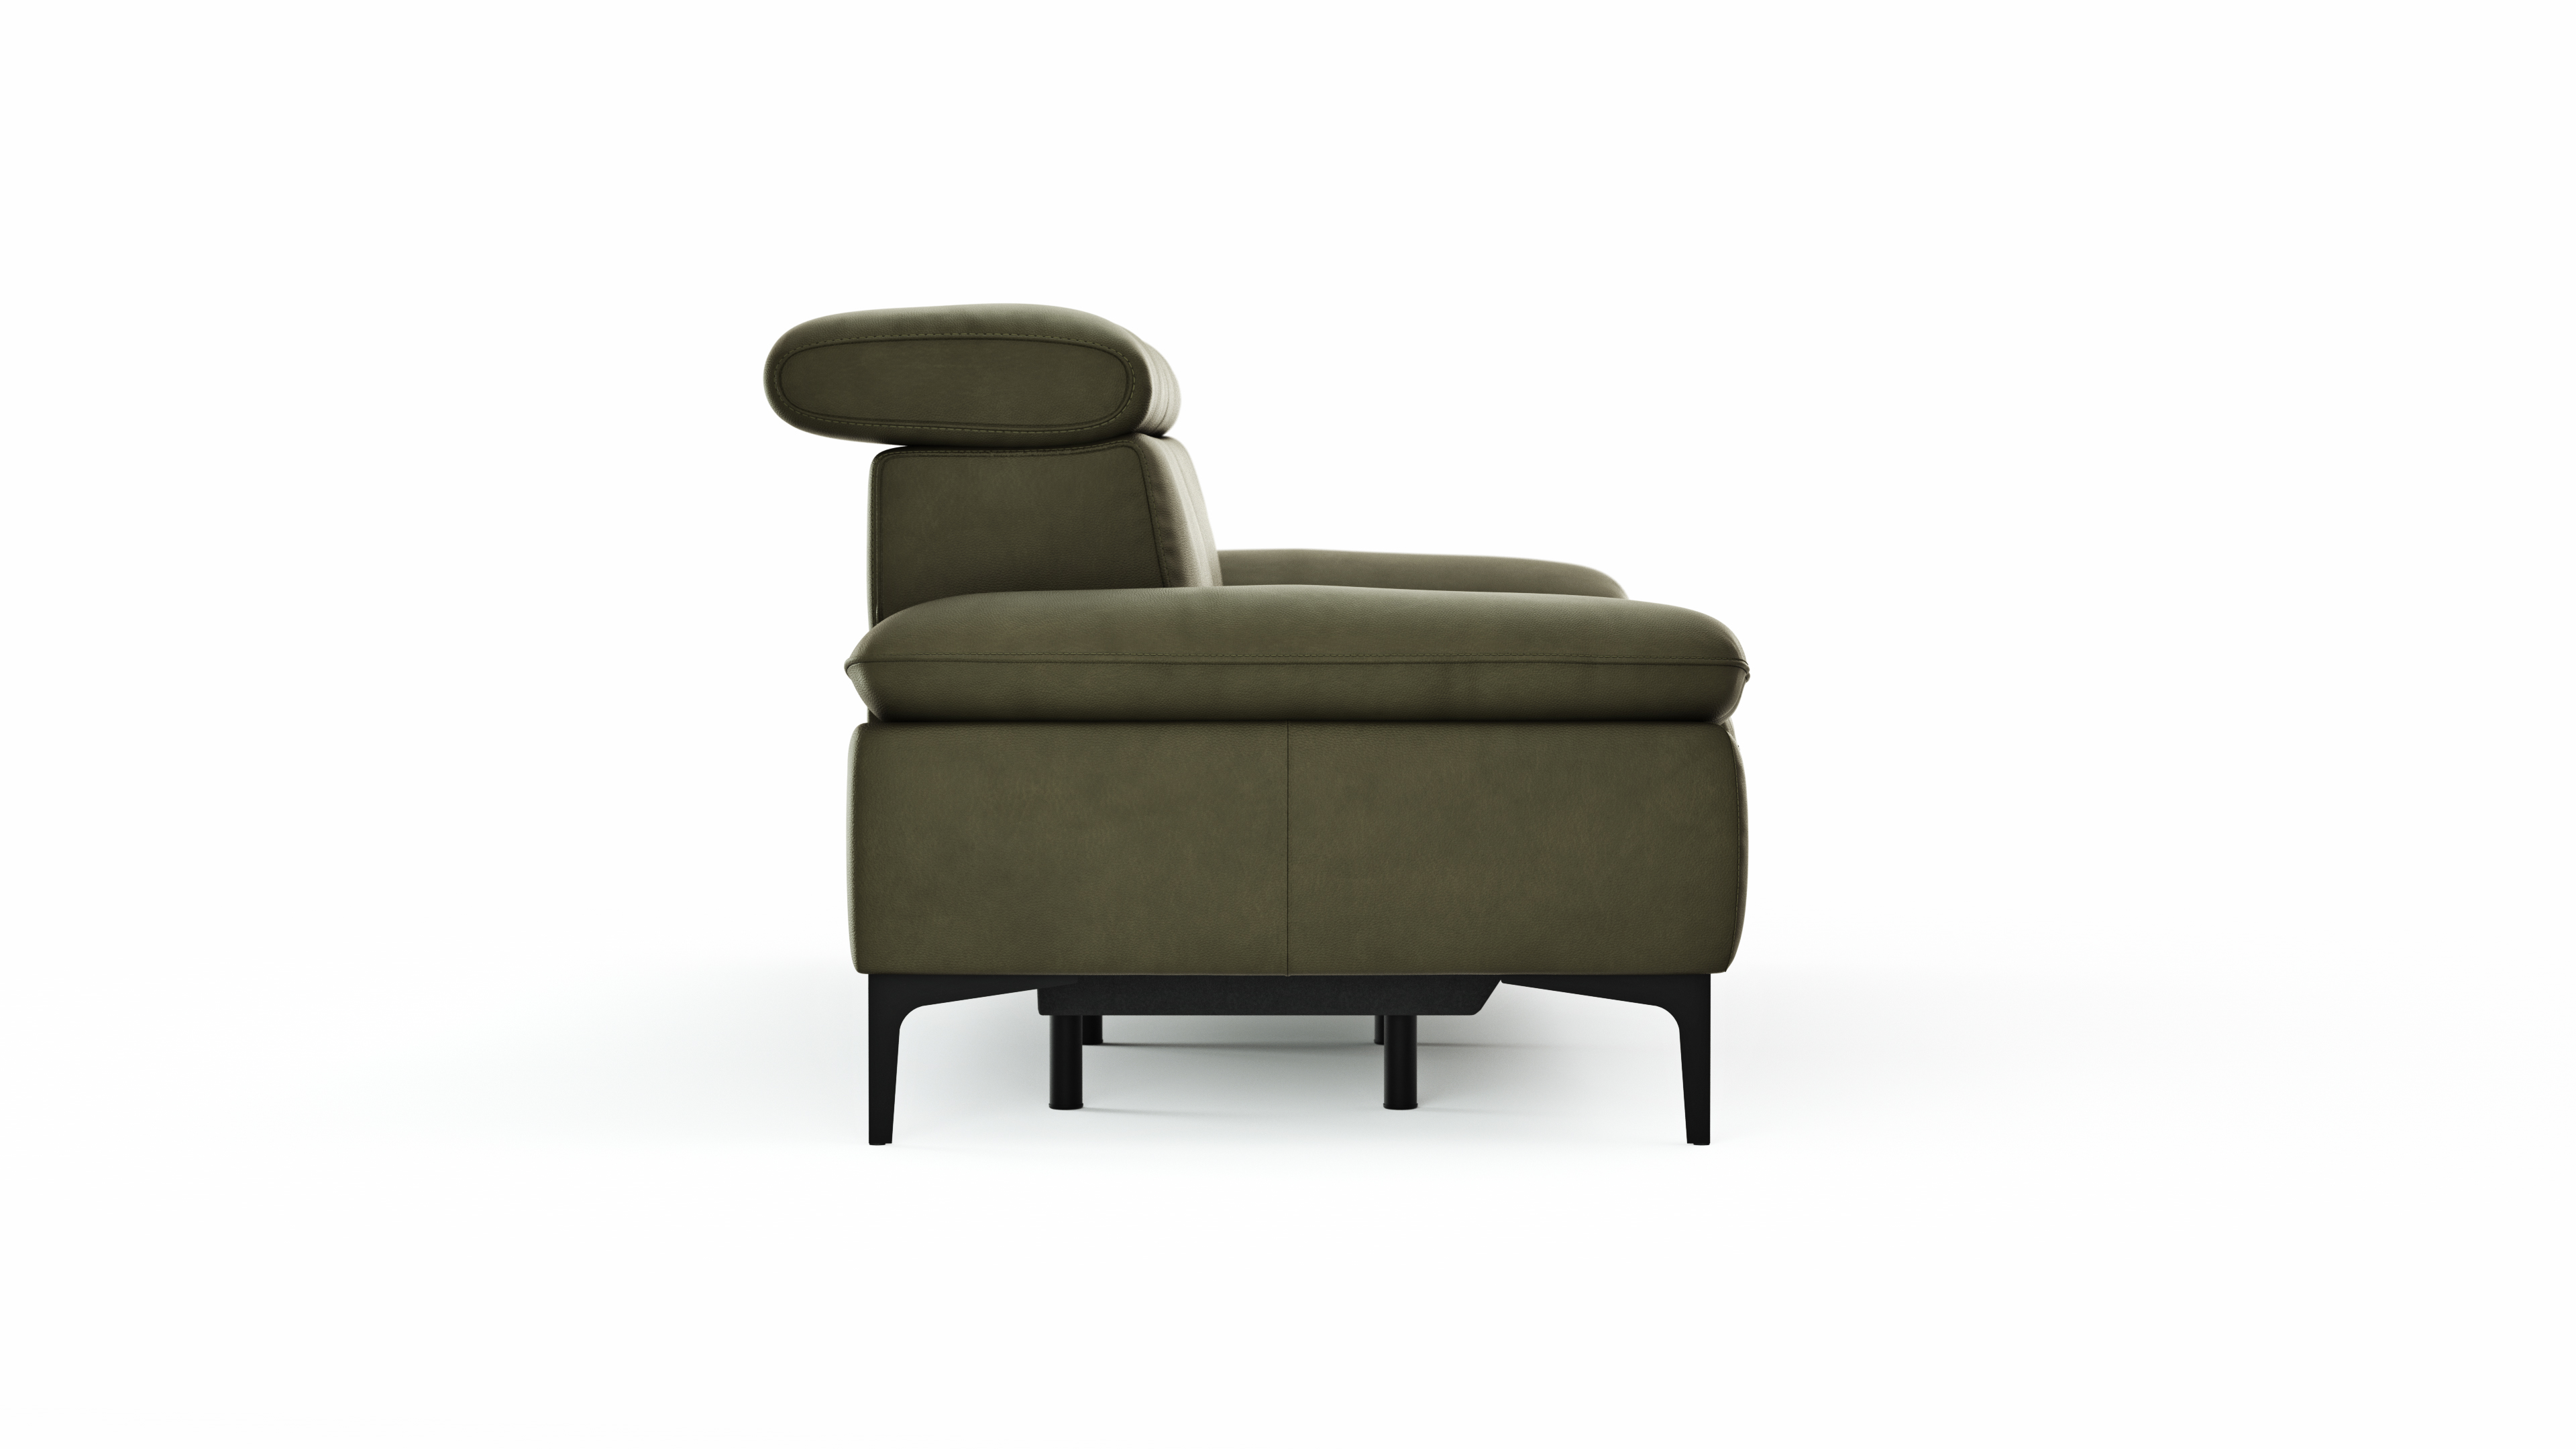 Global Family Sofa Felipa freisteller 1 105135 | Homepoet